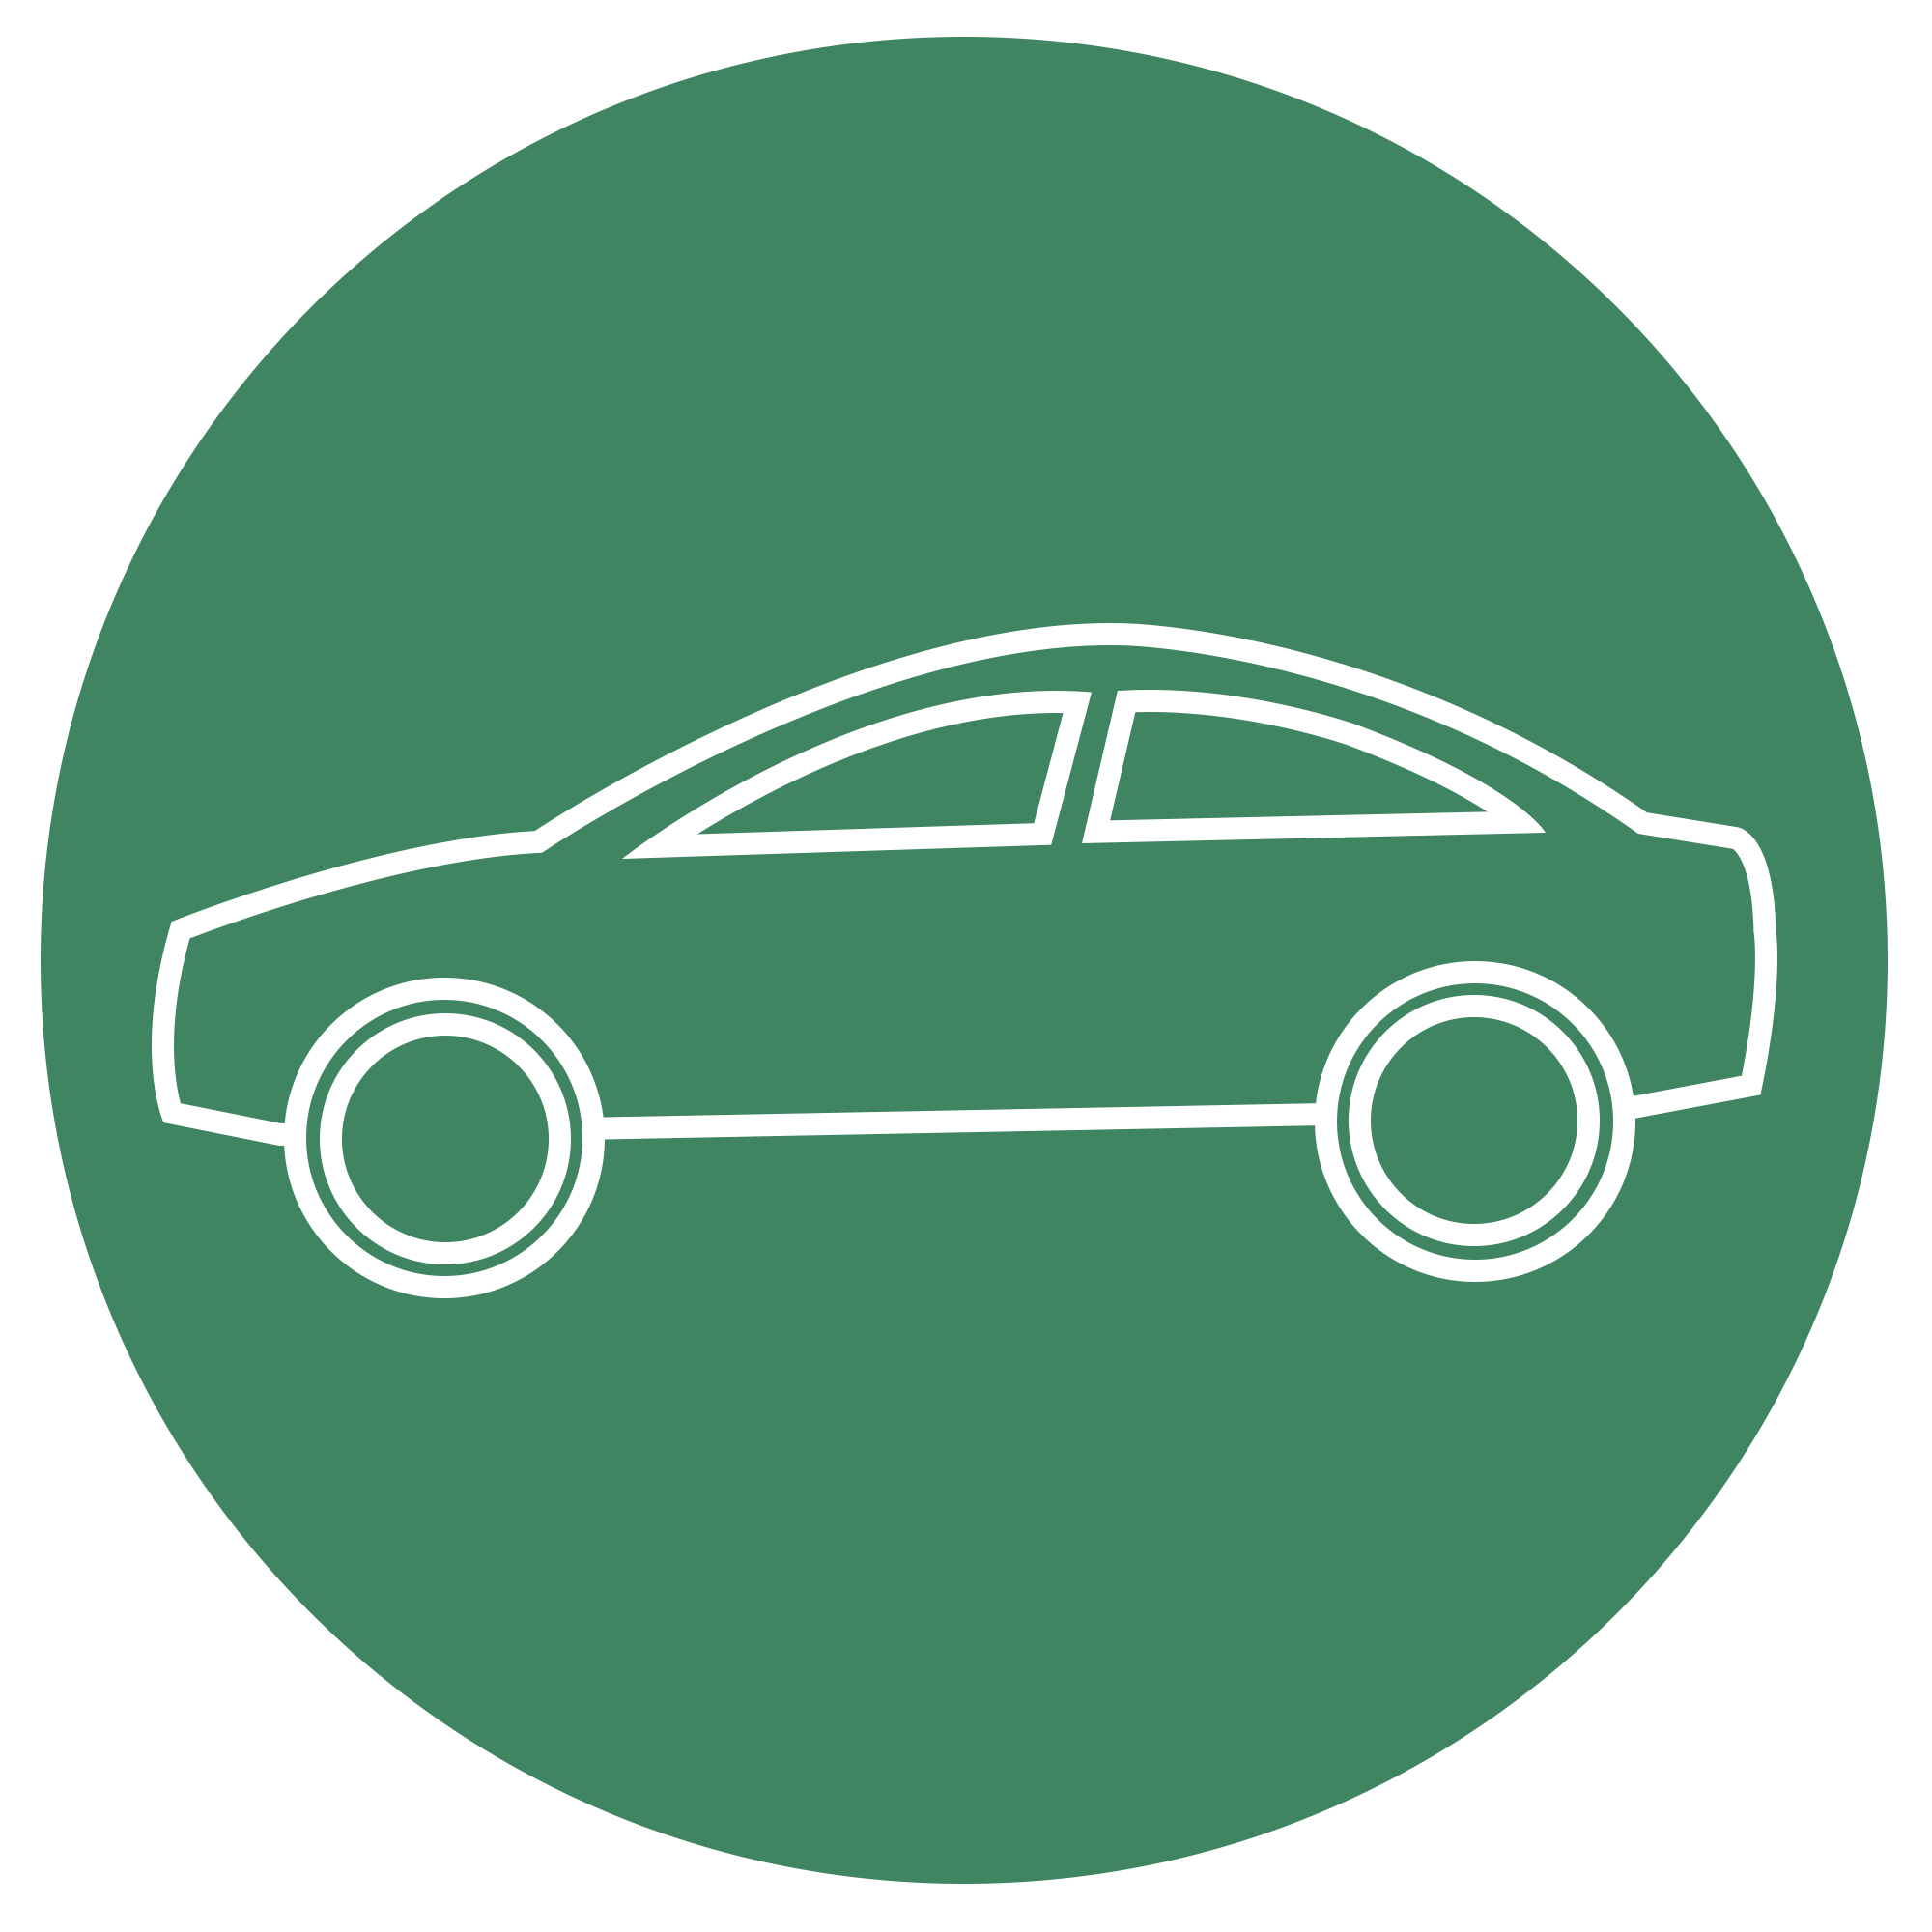 White car line art on green background representing gasoline equivalent